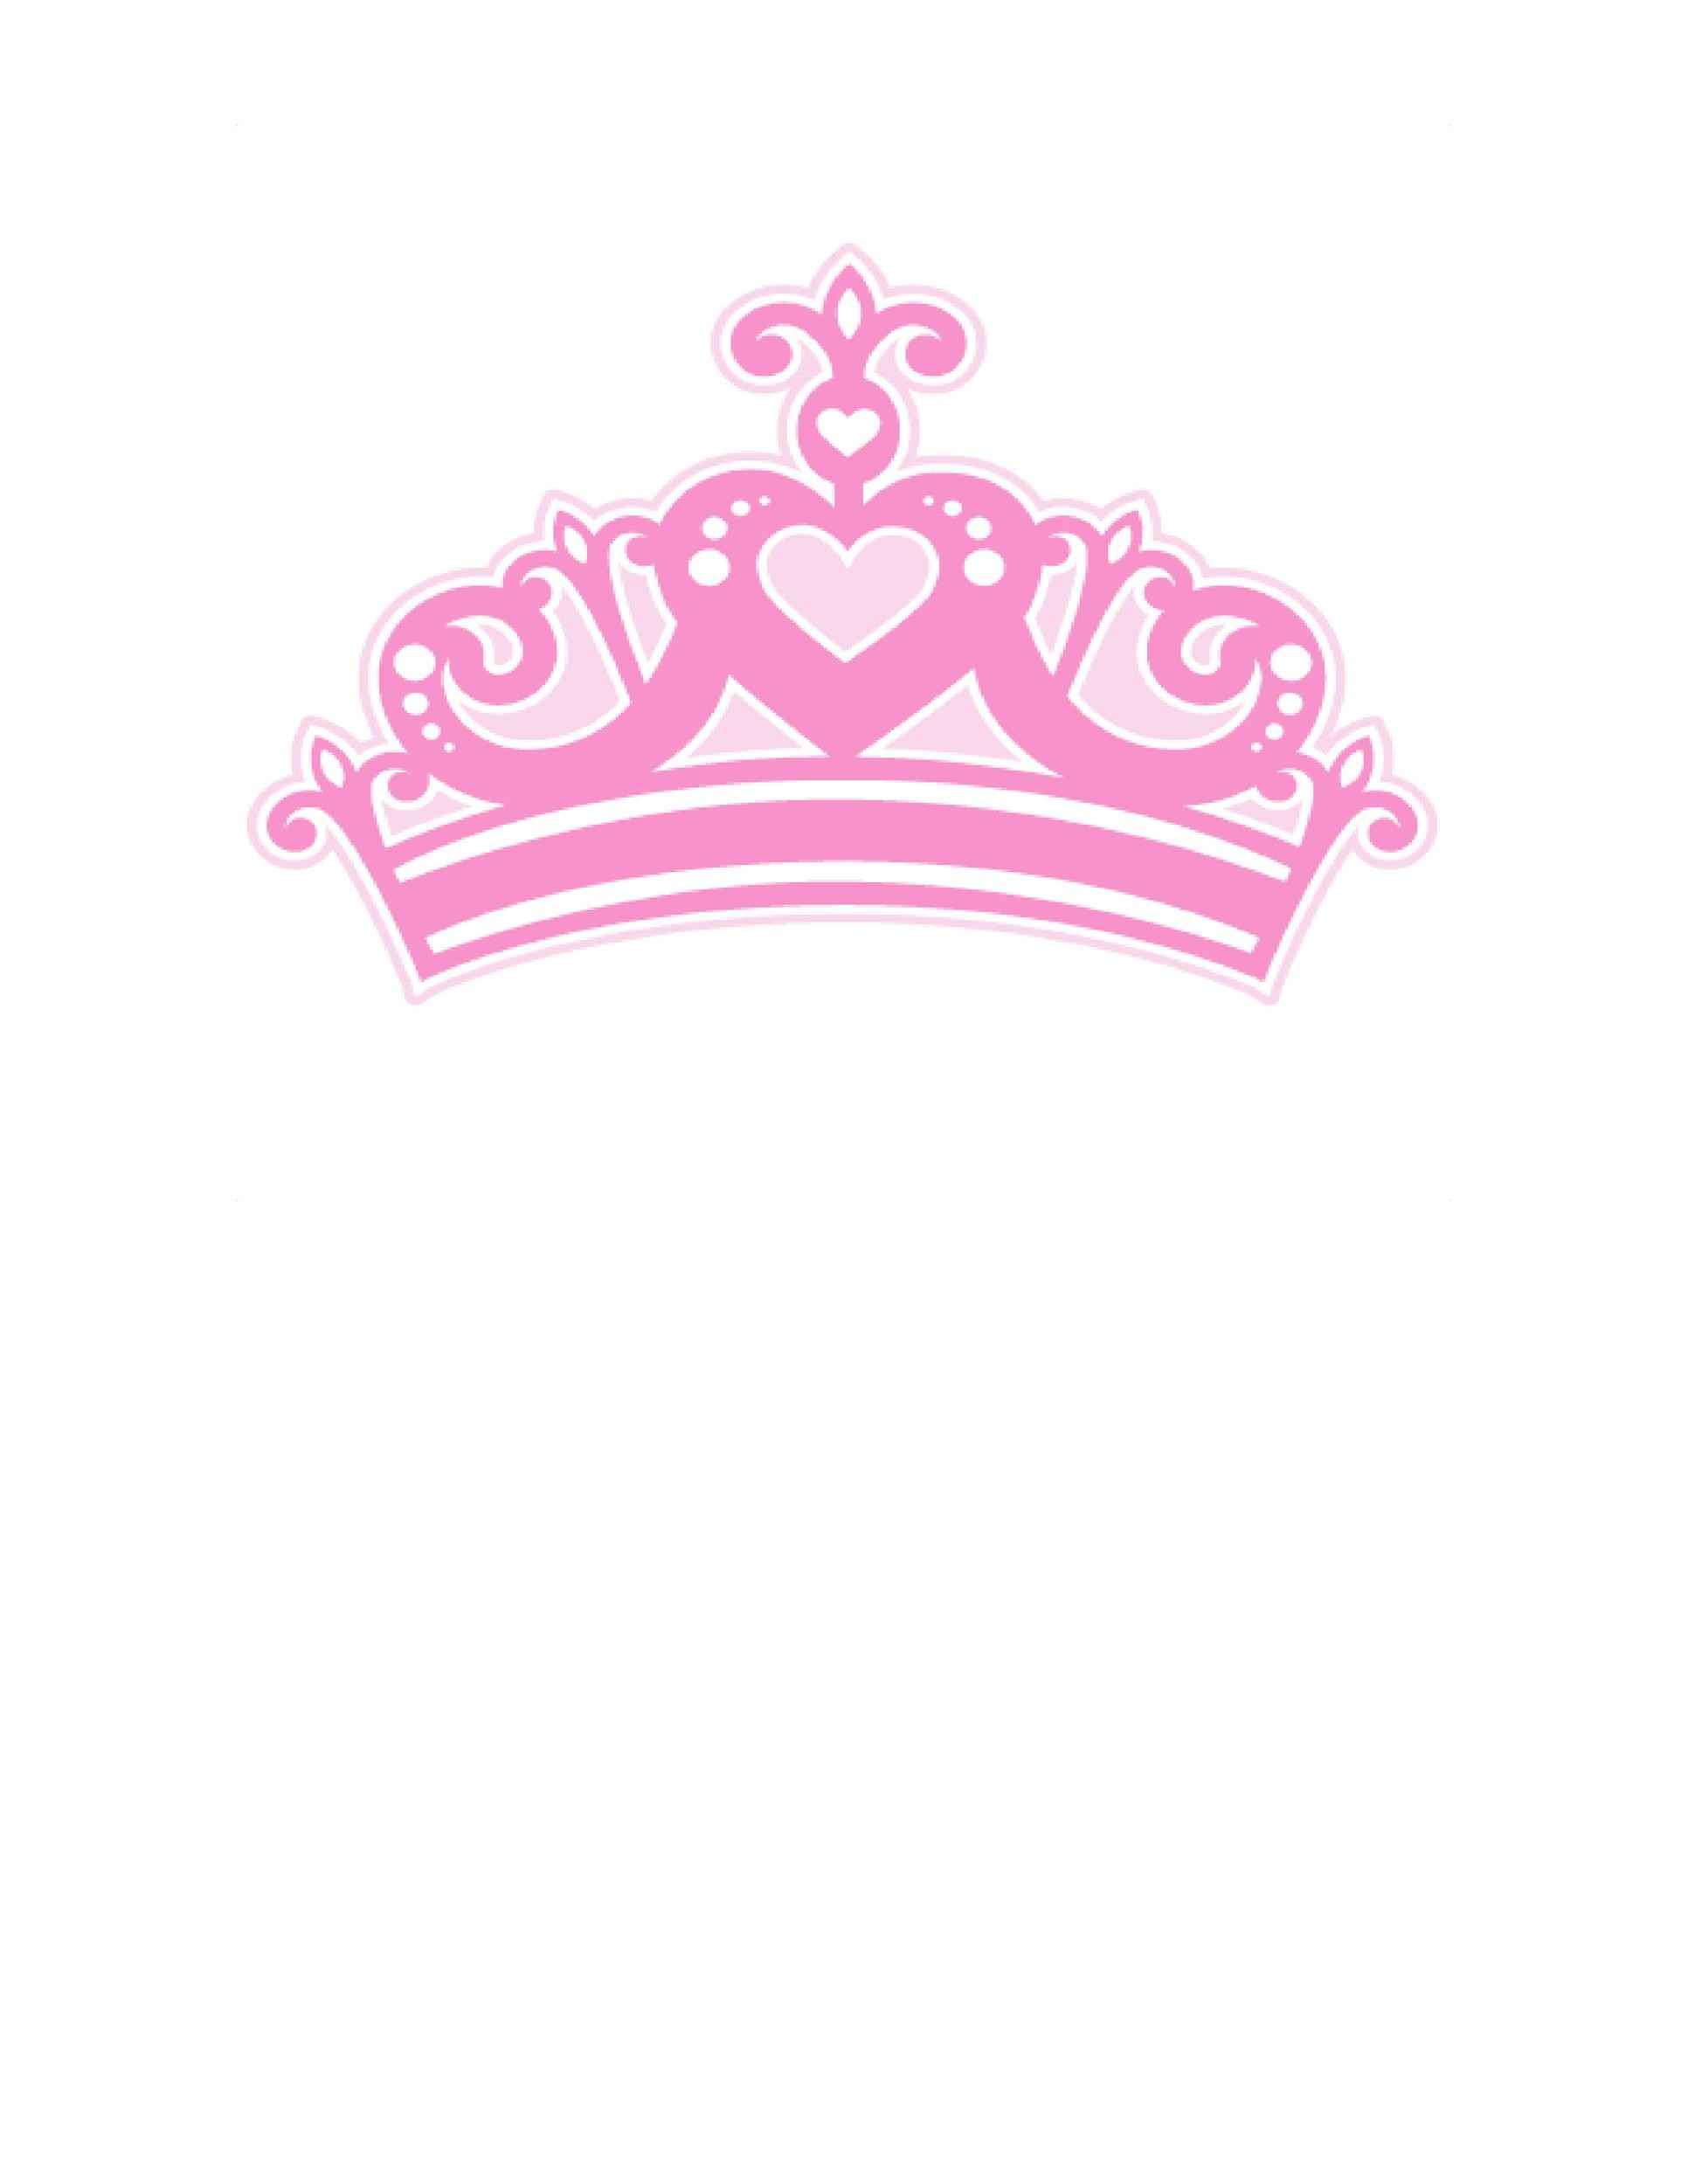 Free Crown Template 30